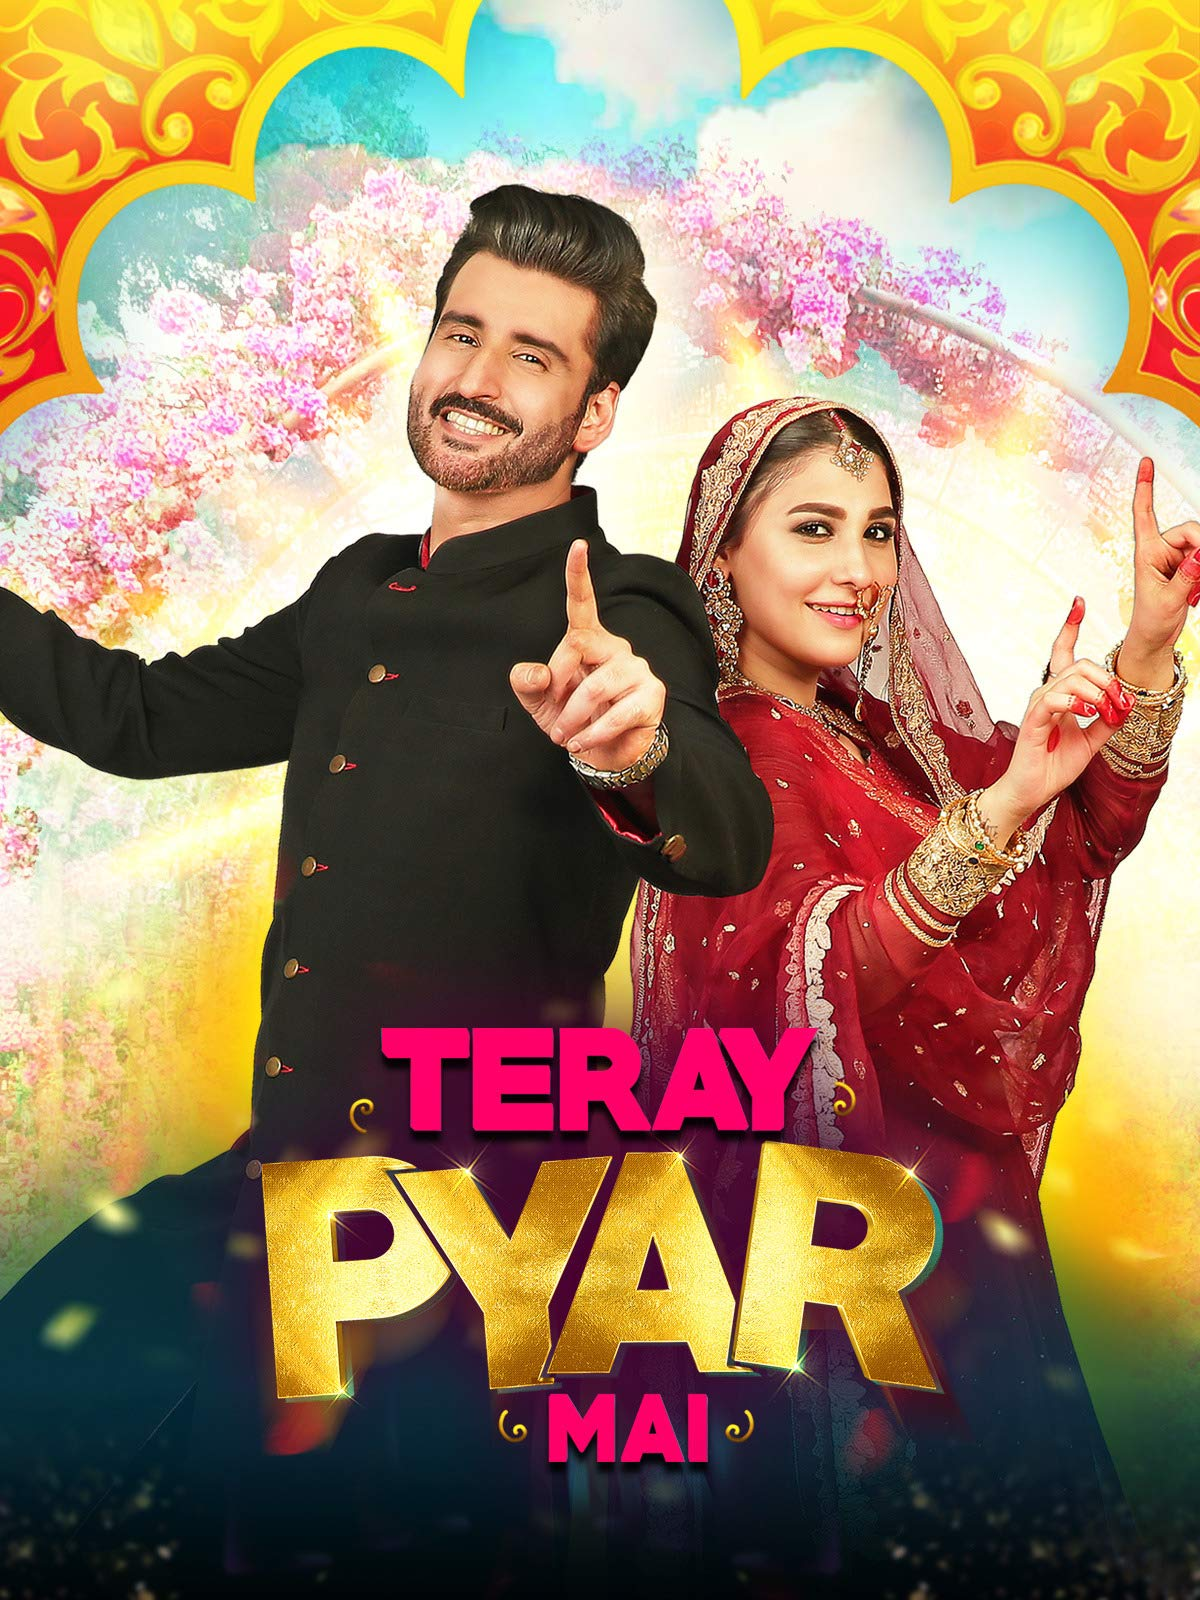 Teray Pyar Mai 2020 Urdu 250MB HDRip